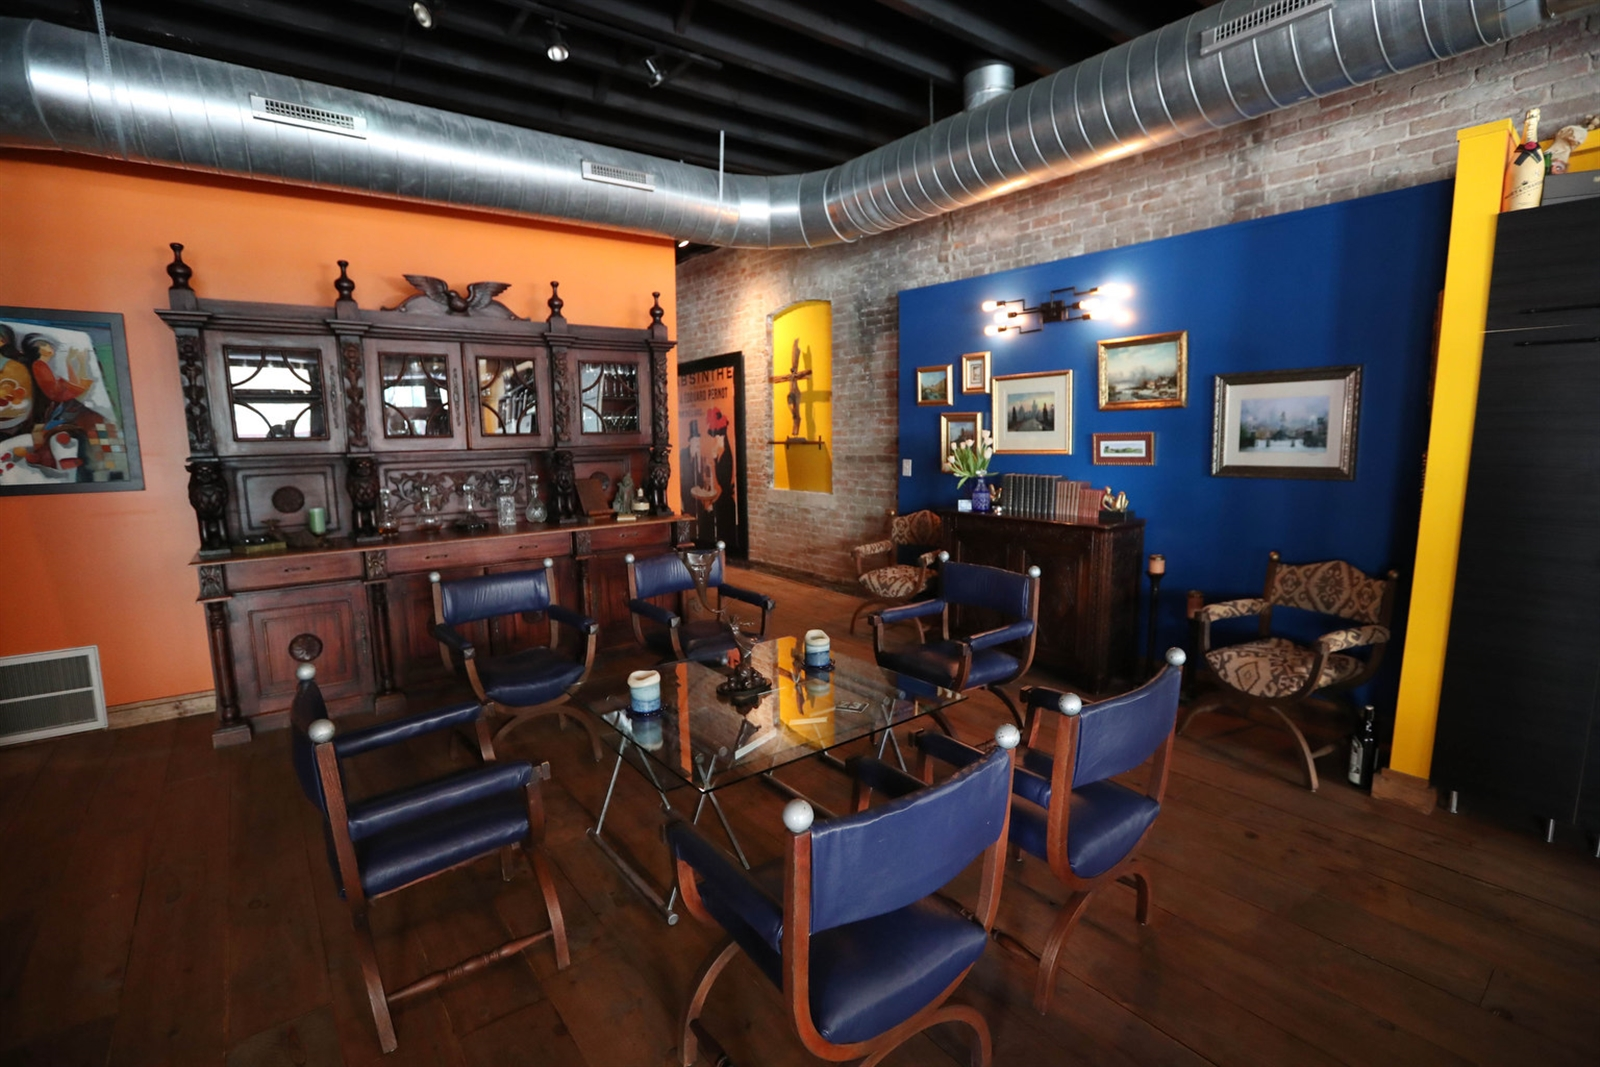 Sandra and Paul Wilkins renovated the three-story building they bought in 2011 in downtown Buffalo. Their residence is on the two upper floors. Their restaurant, Raclettes, is on the first floor.